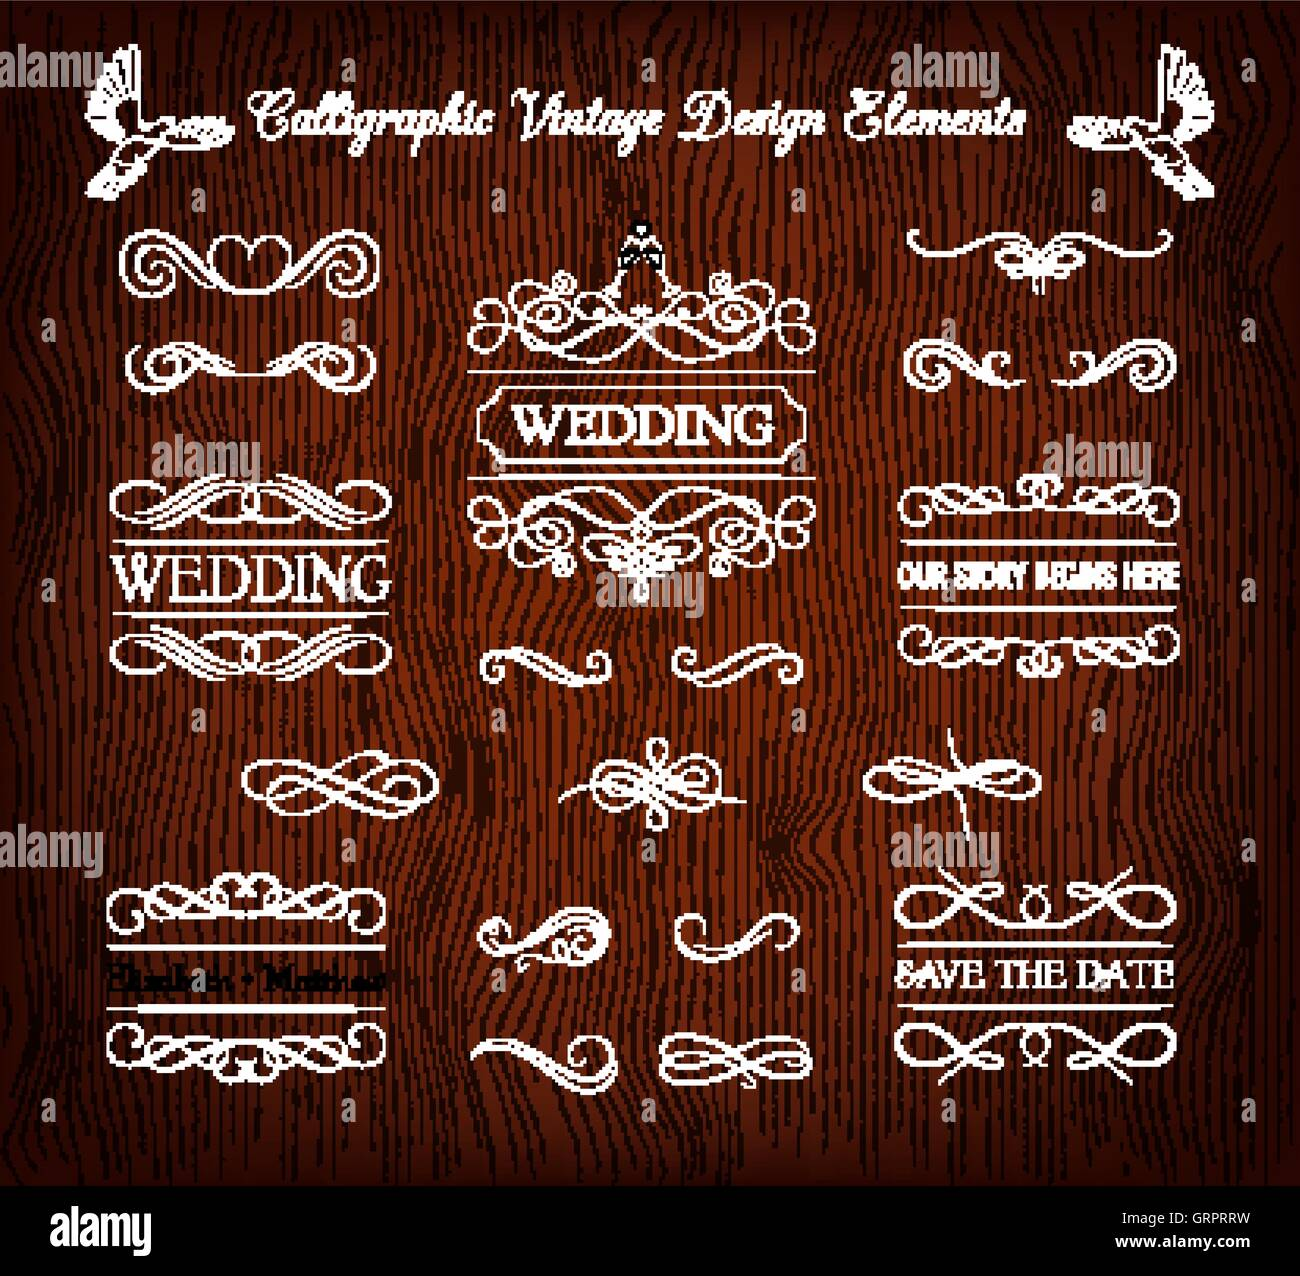 Vintage wedding elements and page decoration. Ornate frames and scroll element. Isolated on red wooden background - Stock Image